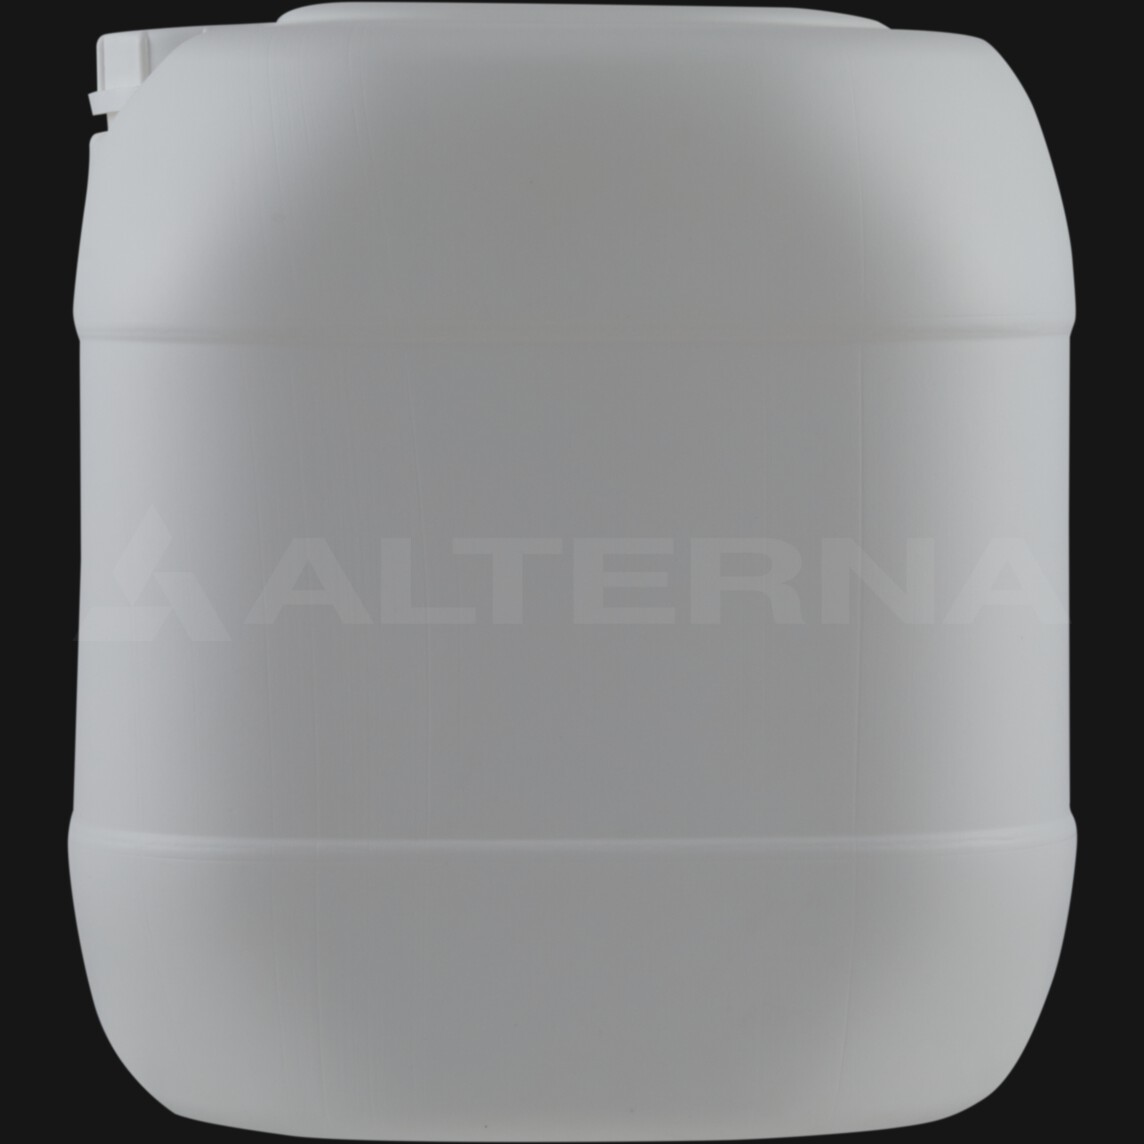 30 Liter HDPE Jerry Can with 60 mm Alu. Foil Seal Secure Cap